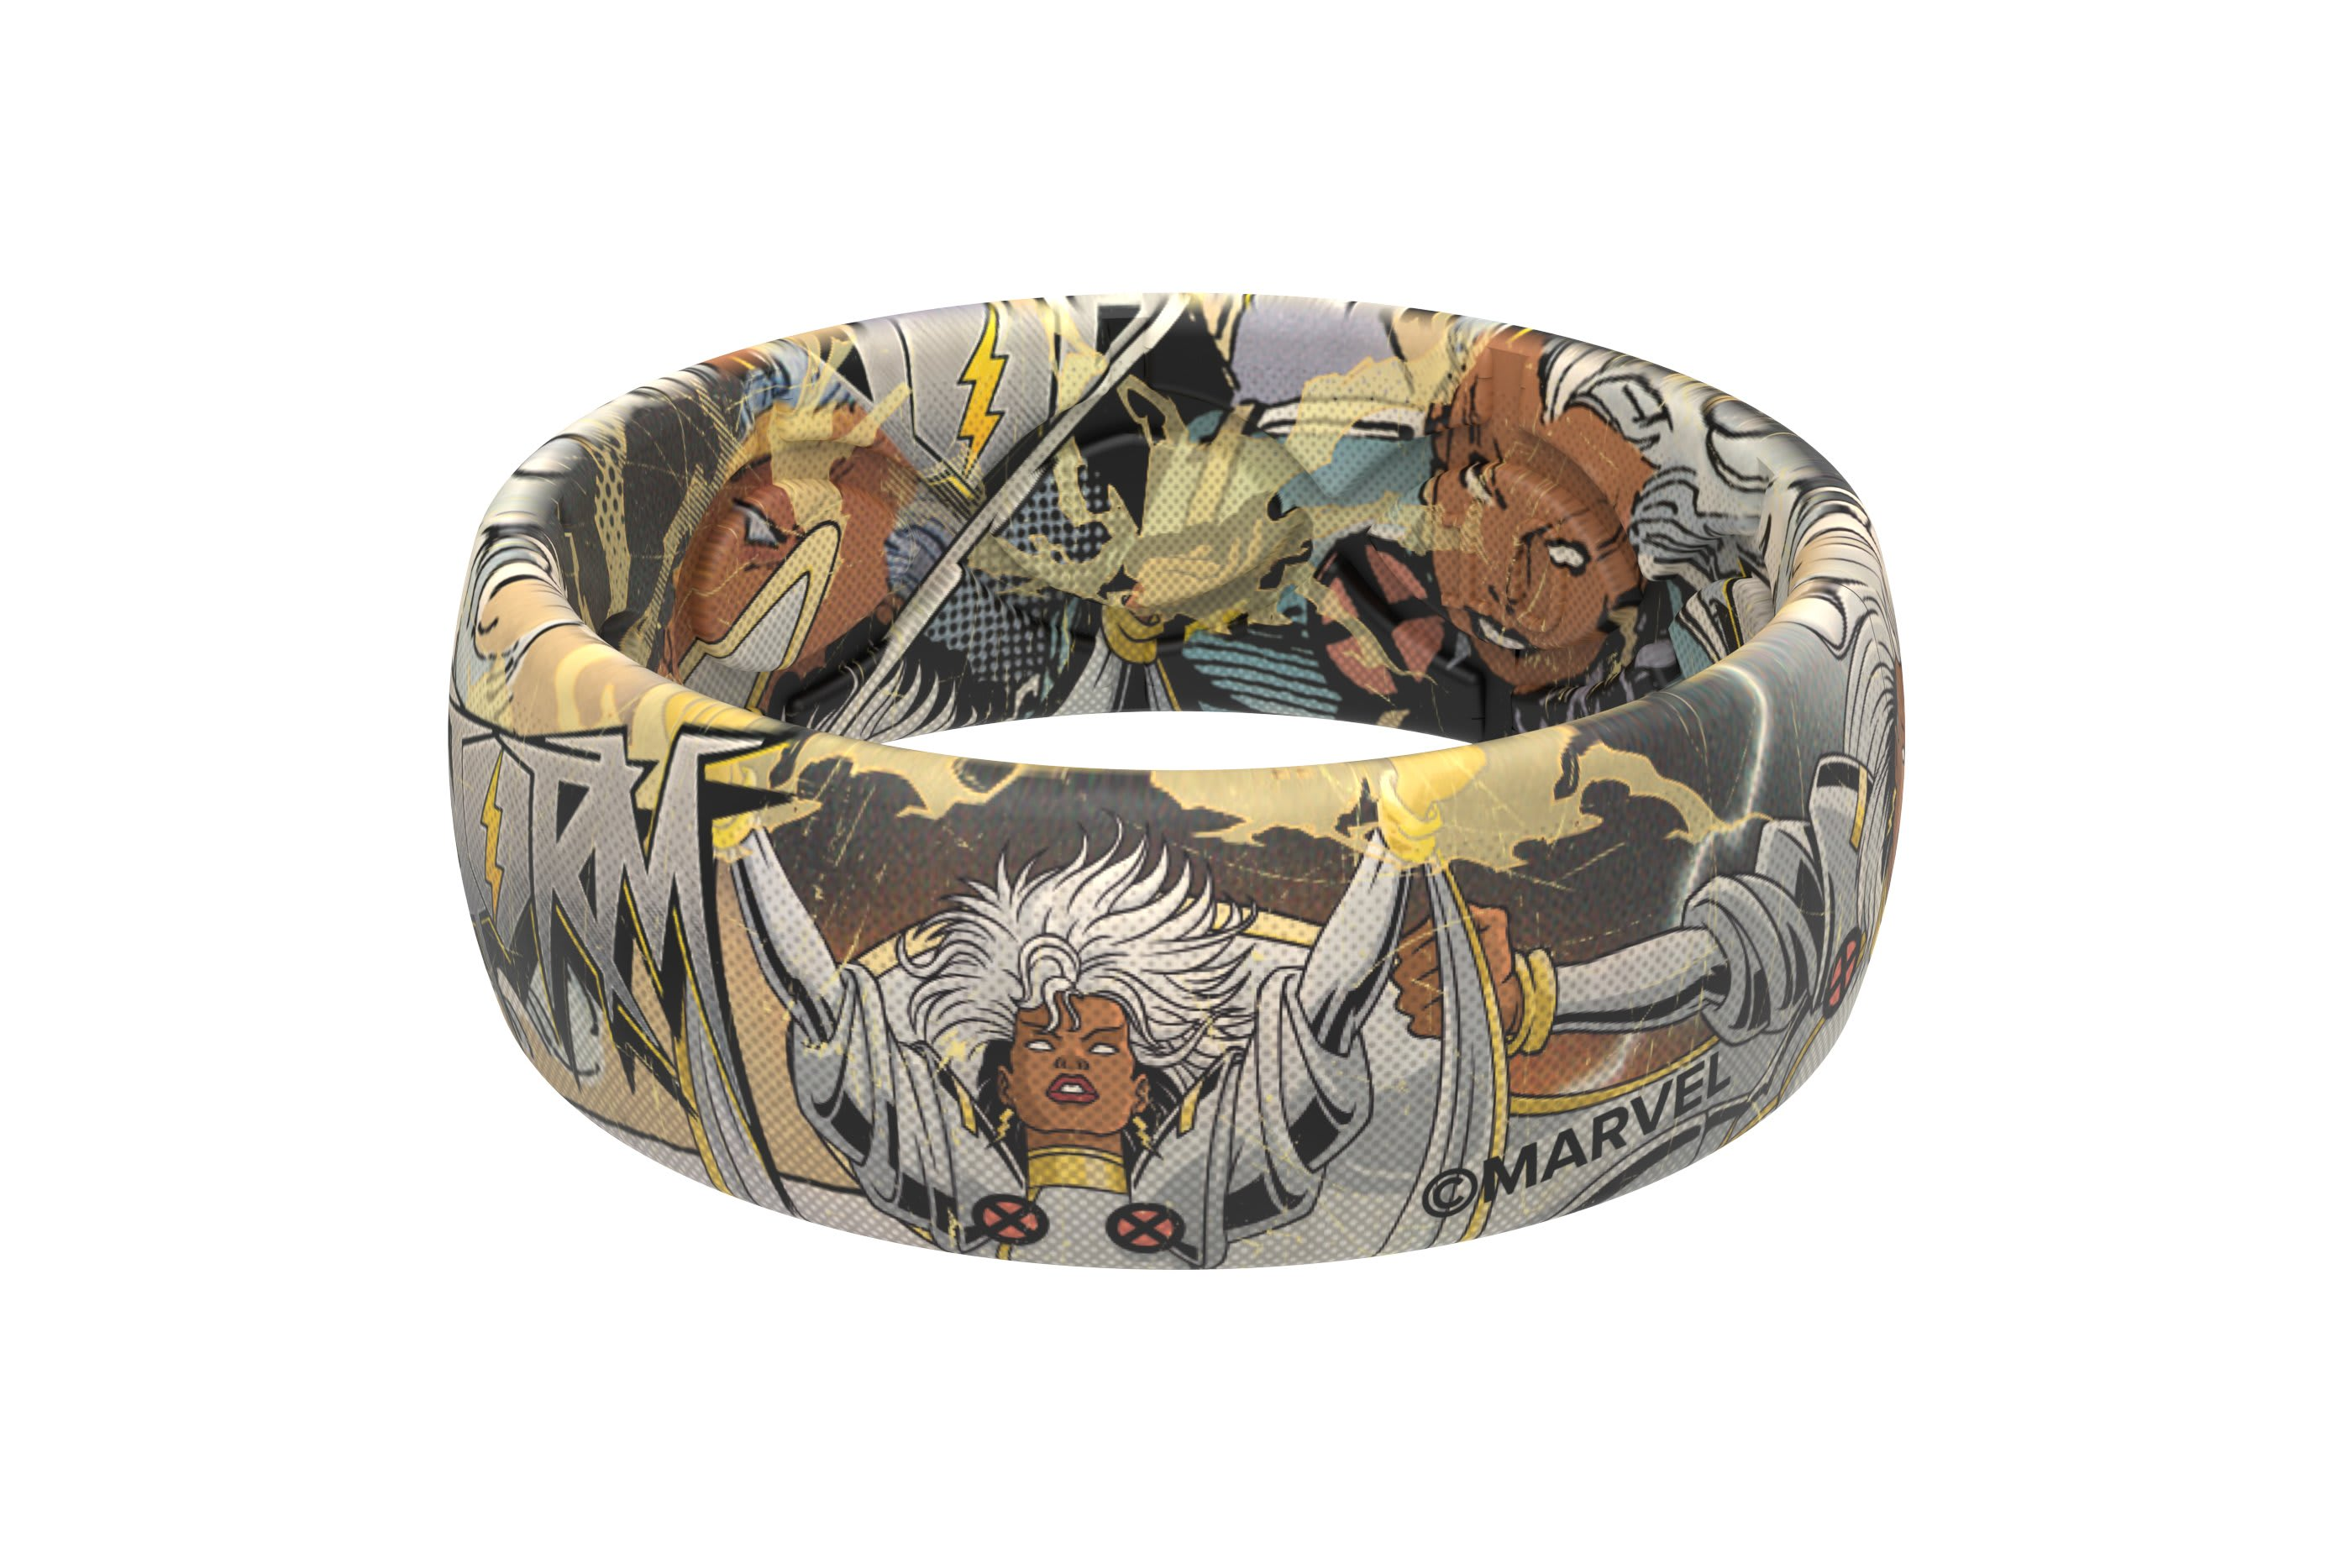 Storm Classic Comic Ring  viewed from side